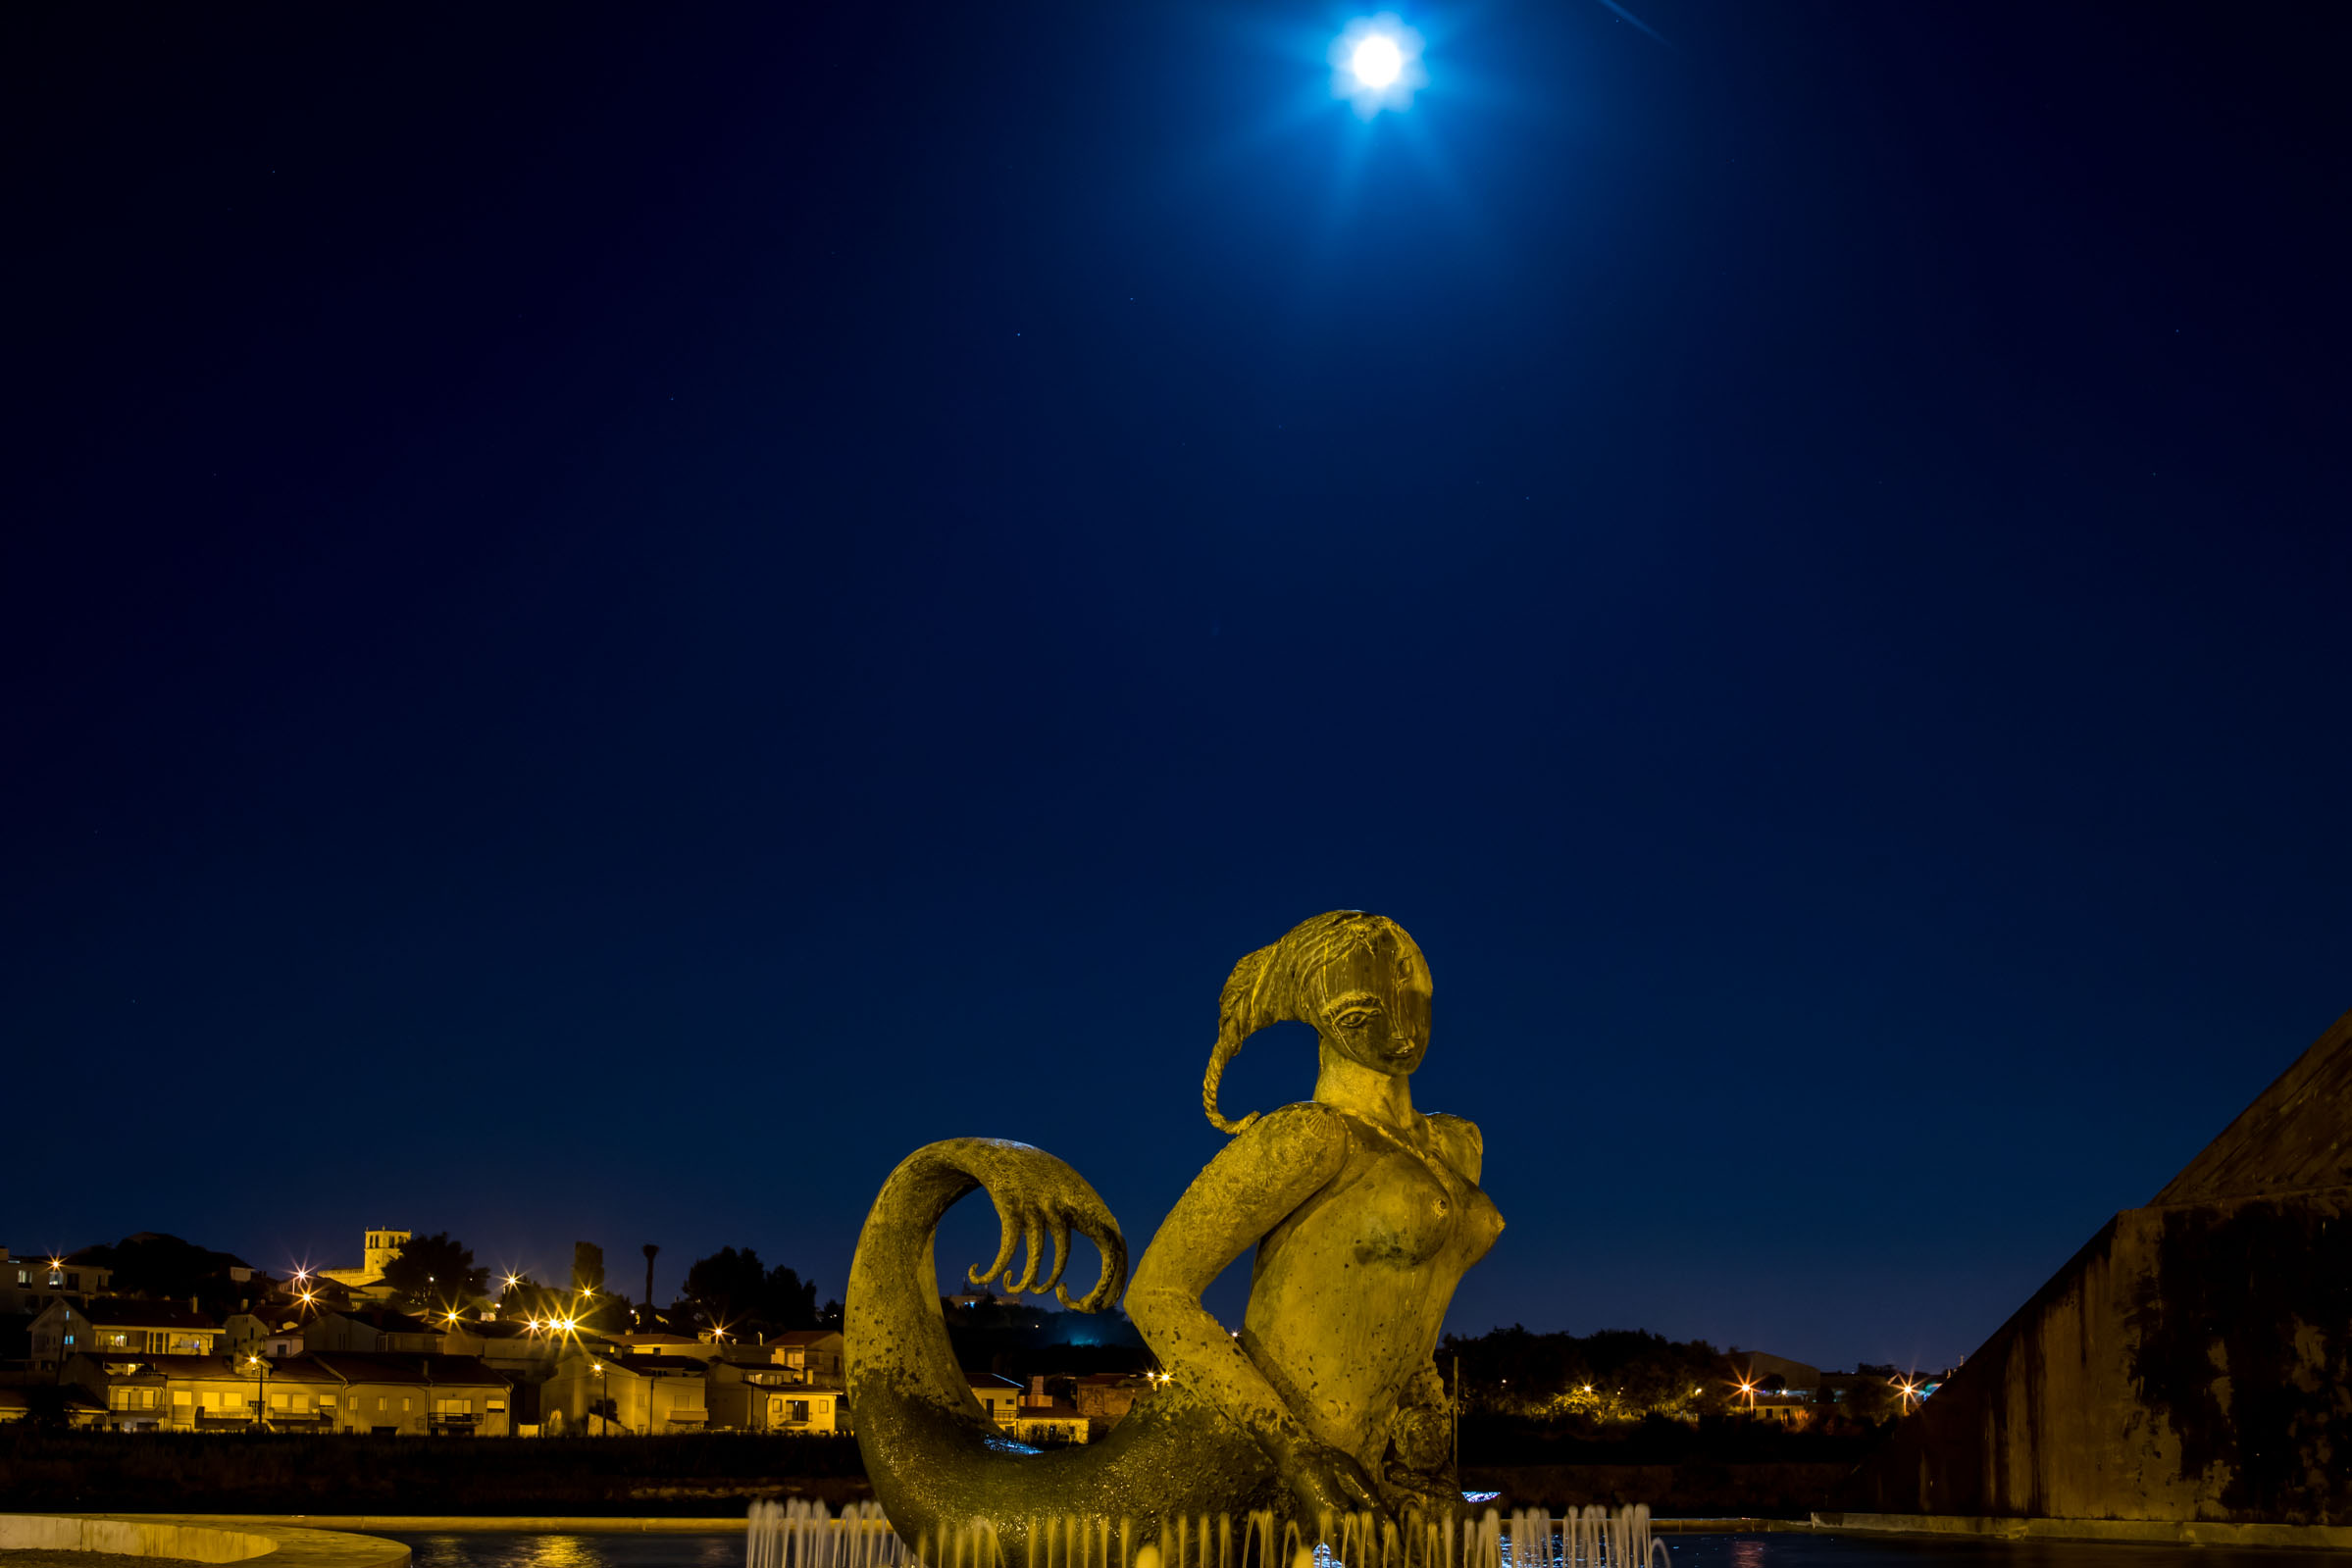 9. In the Moonlight  Built in 2001, this enormous and head-turningly interesting mermaid statue takes residence along the city's river.